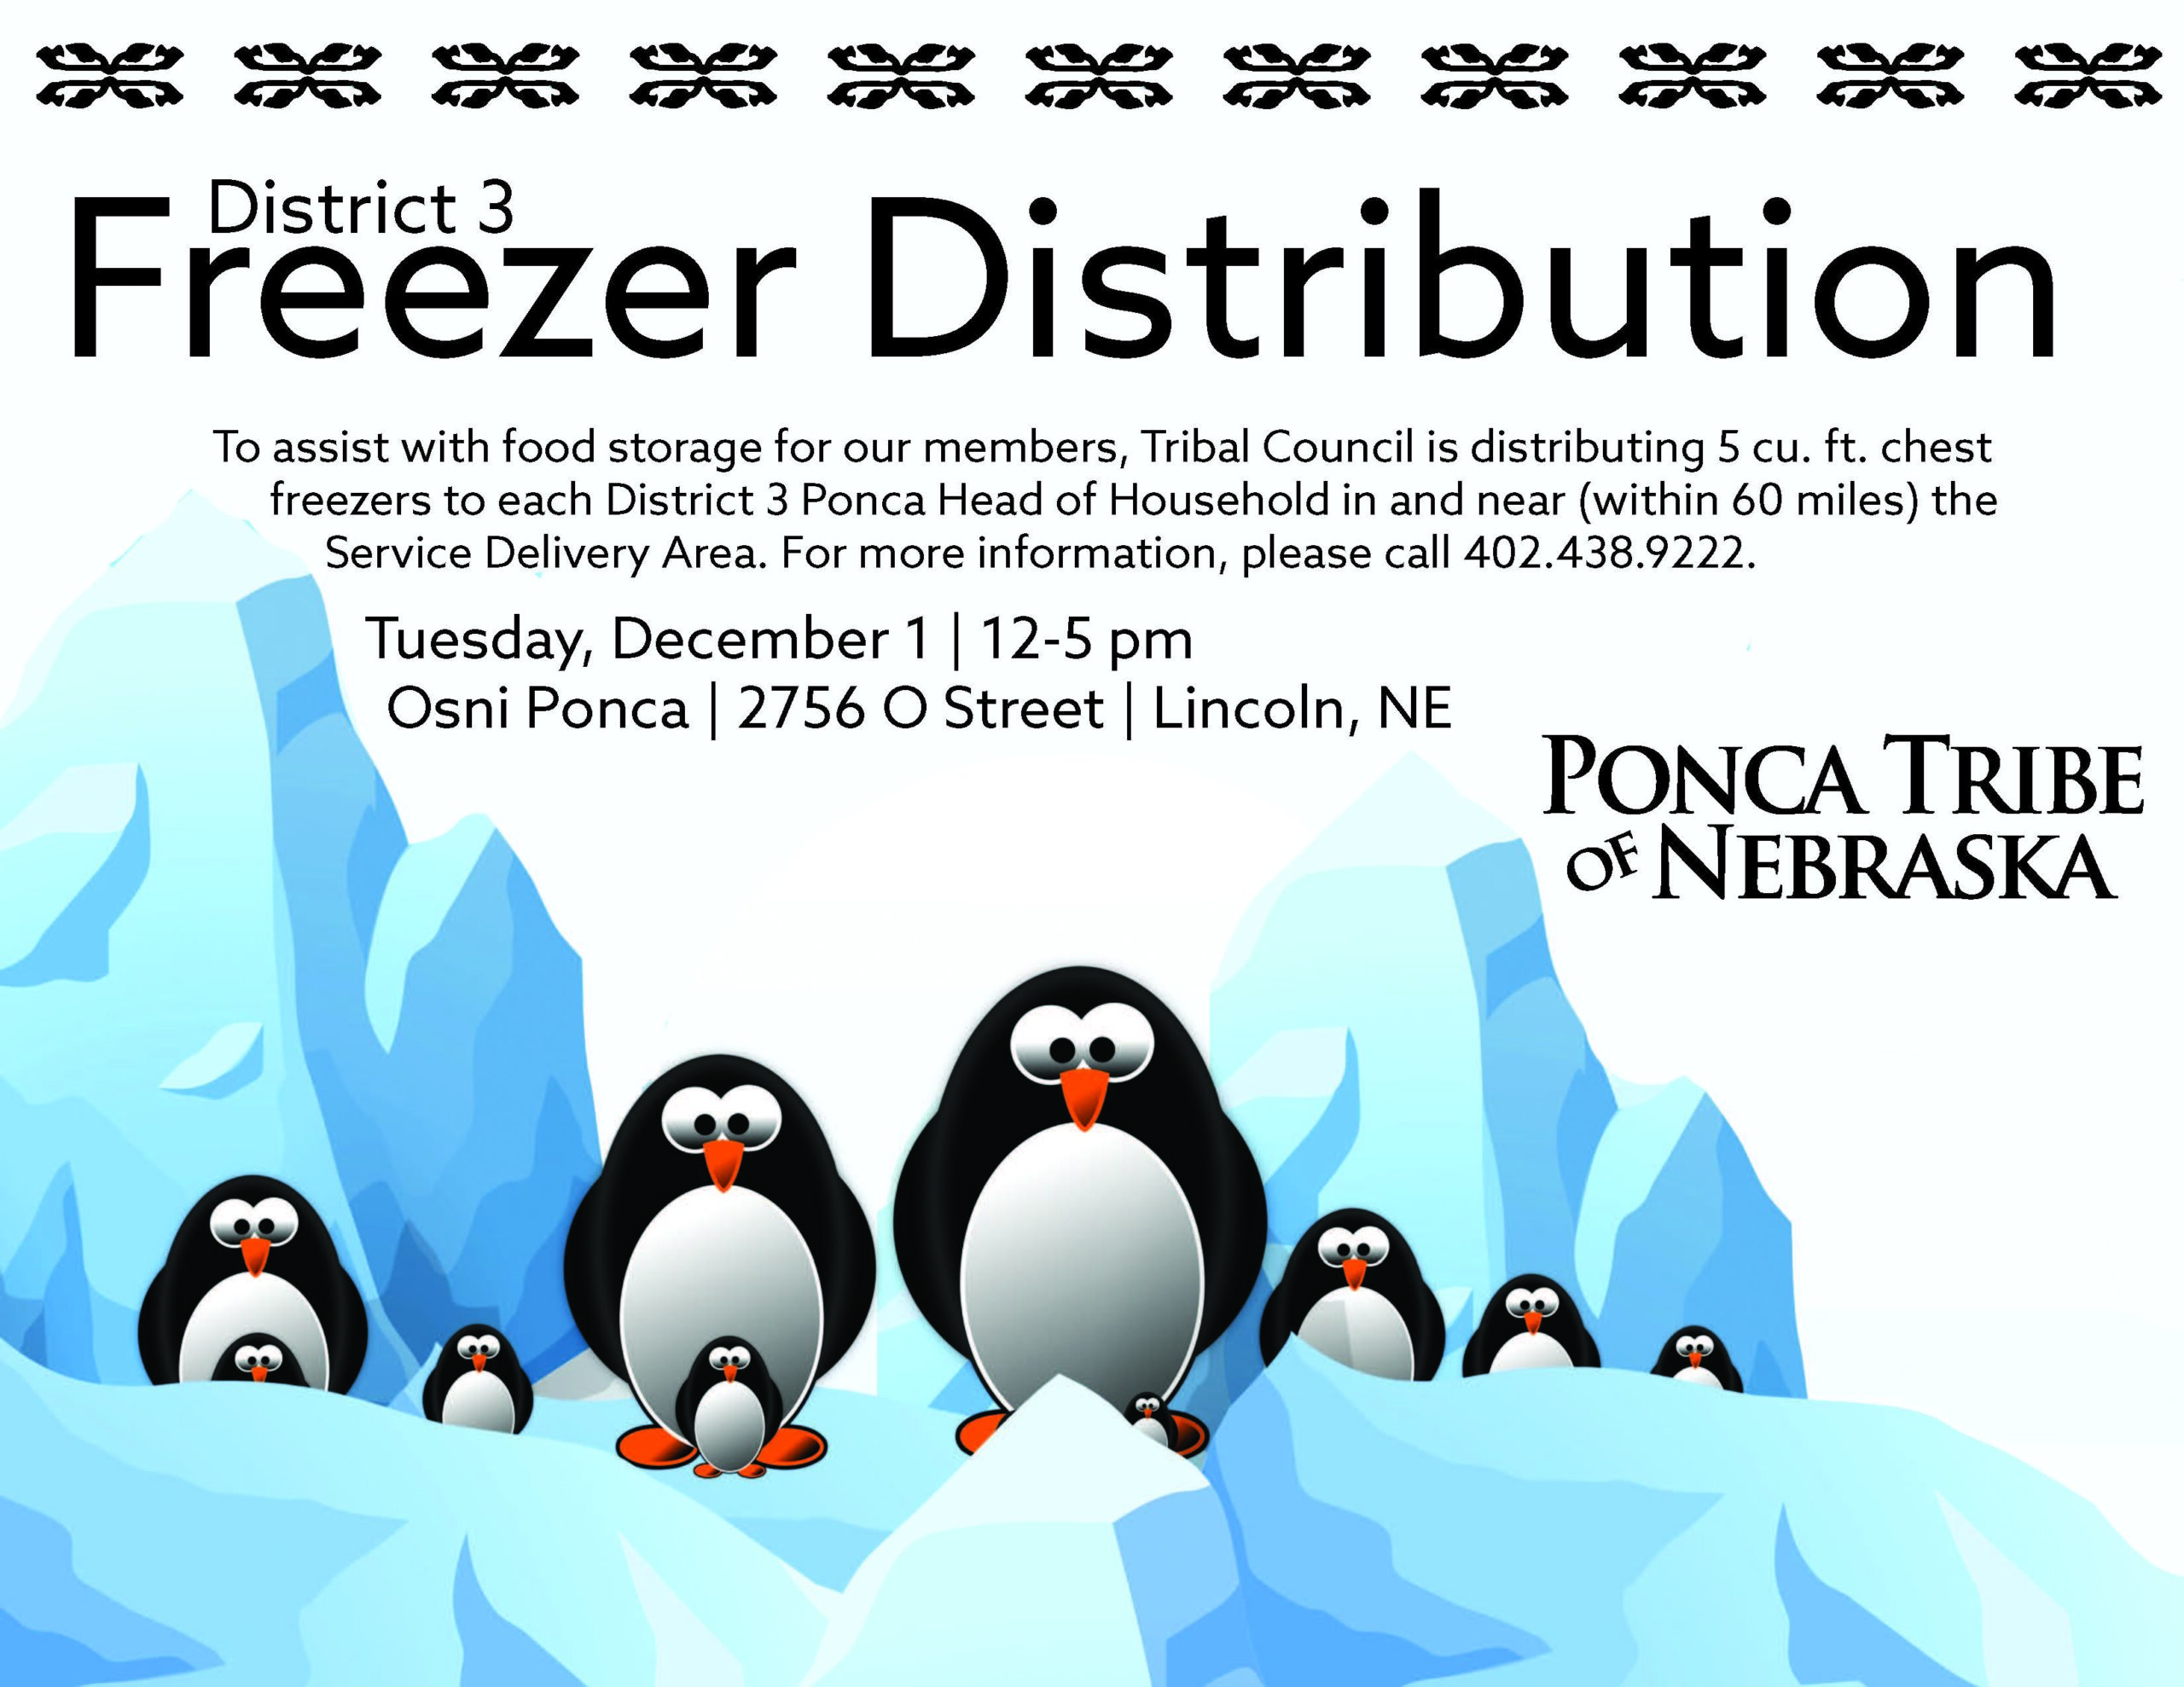 Additional Date for District 3 Freezer Distribution